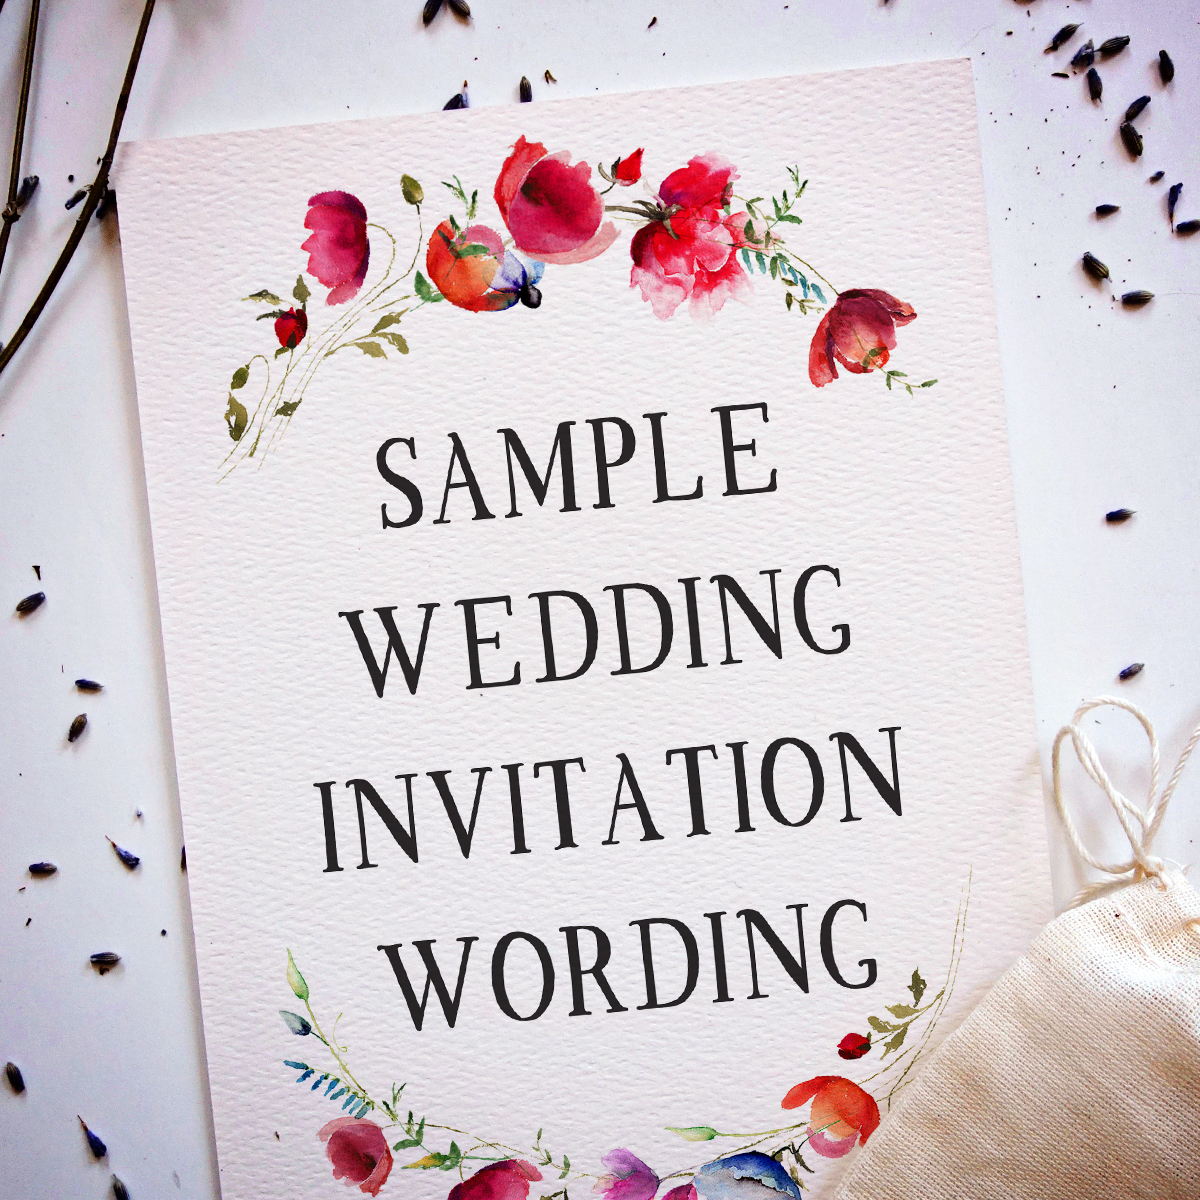 Wedding Wishes After Wedding: Wedding Wording Samples And Ideas For Indian Wedding